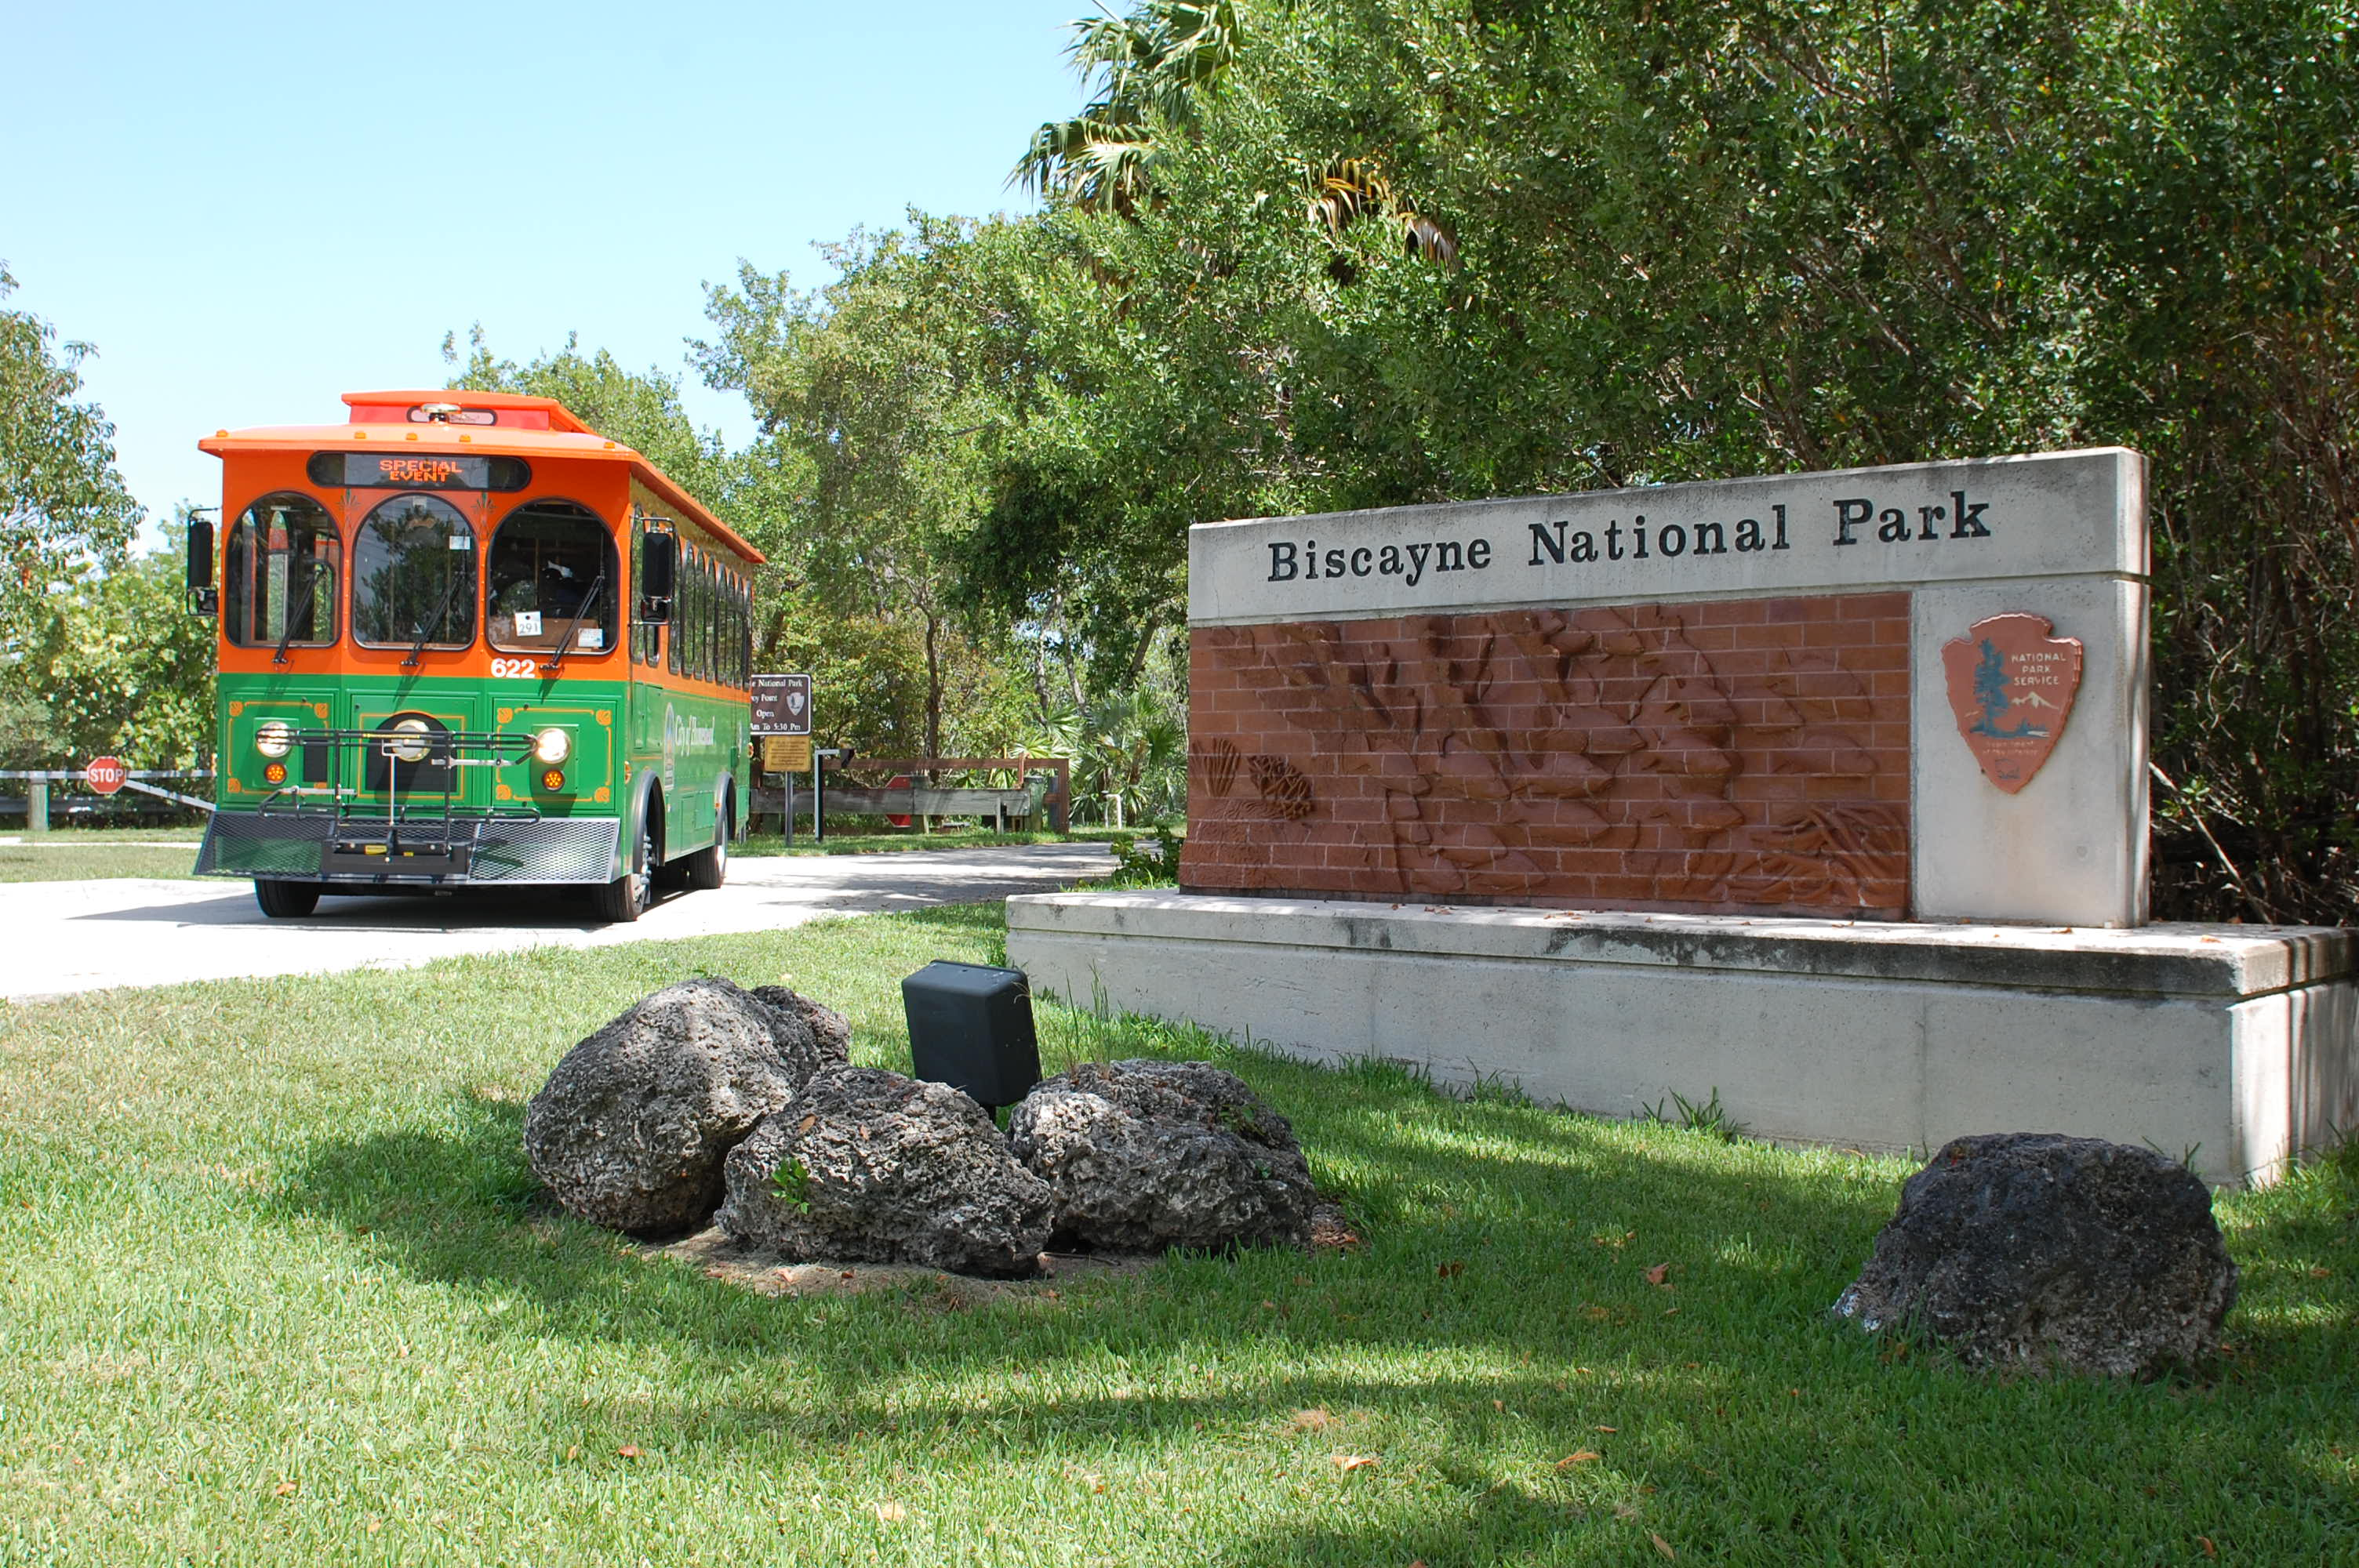 Homestead National Parks Trolley at Biscayne National Park entrance.